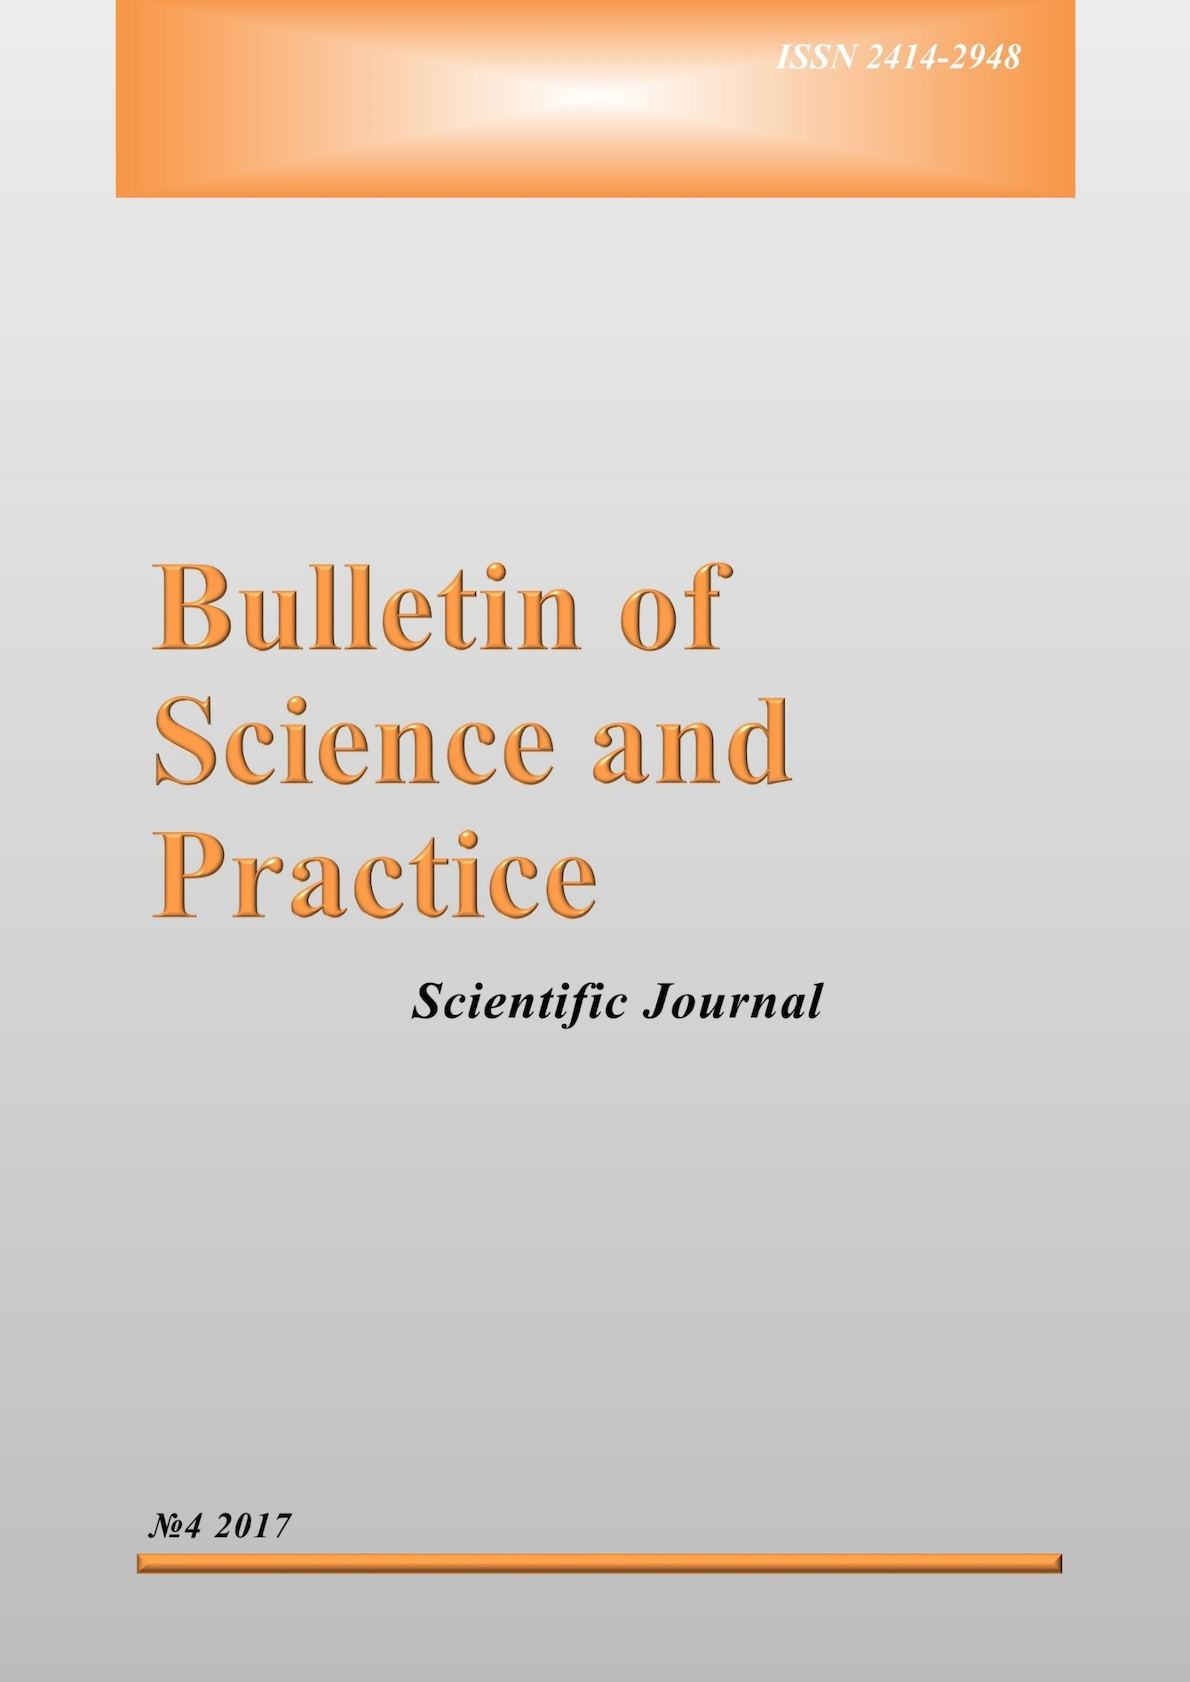 Calaméo - Bulletin Of Science And Practice №4 2017 in Depo Provera Calendar 2020 Does It Change